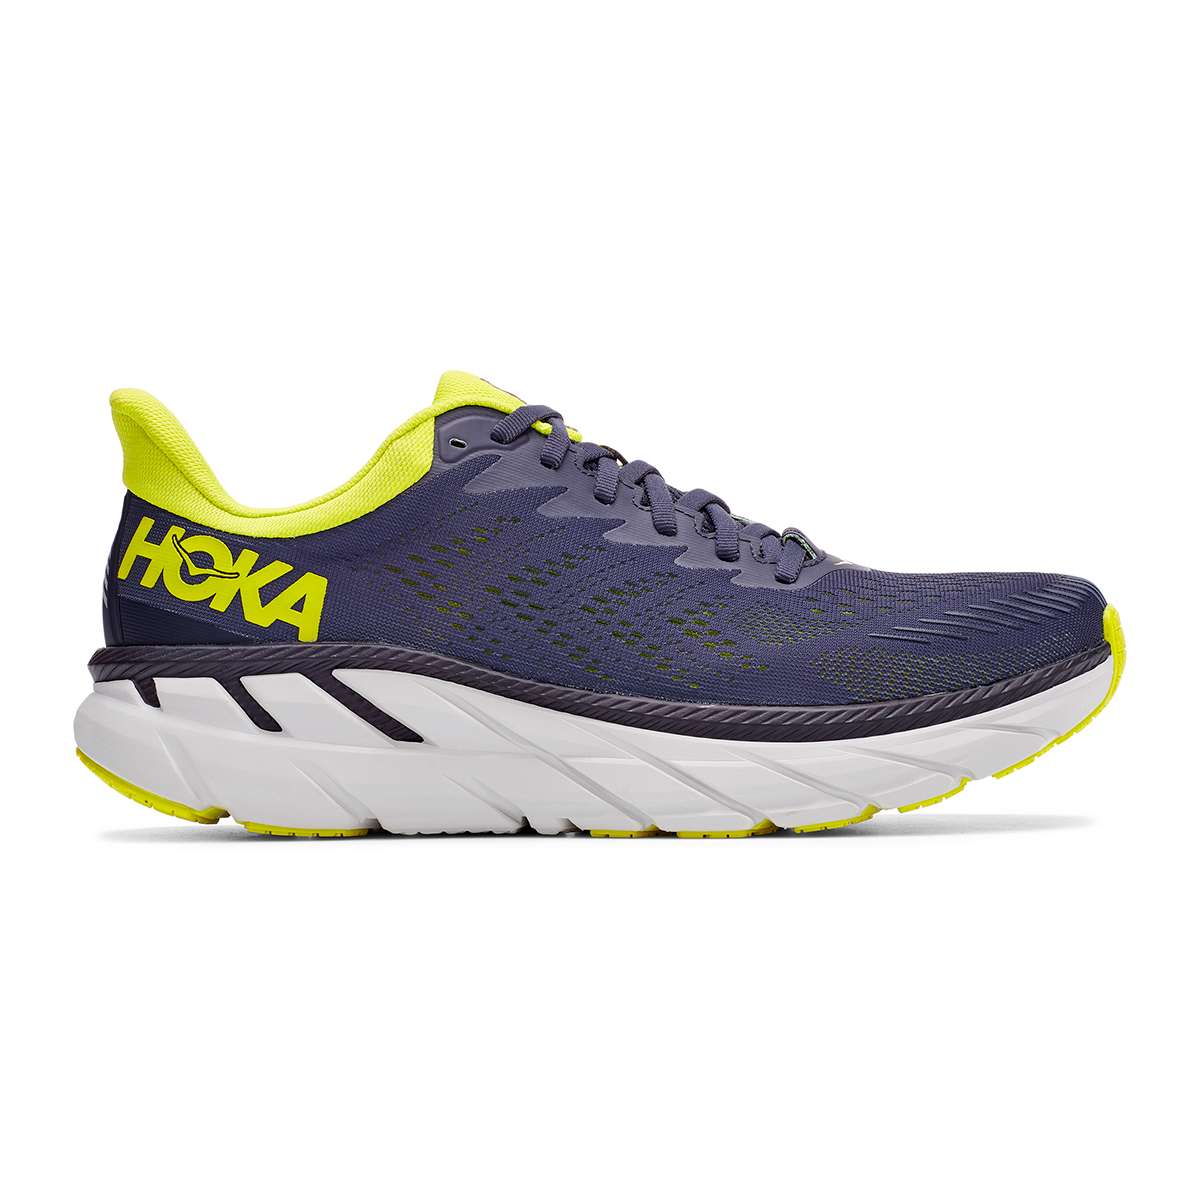 Men's Hoka One One Clifton 7 Running Shoe - Color: Odyssey Grey/Evening Primrose - Size: 7 - Width: Regular, Odyssey Grey/Evening Primrose, large, image 1